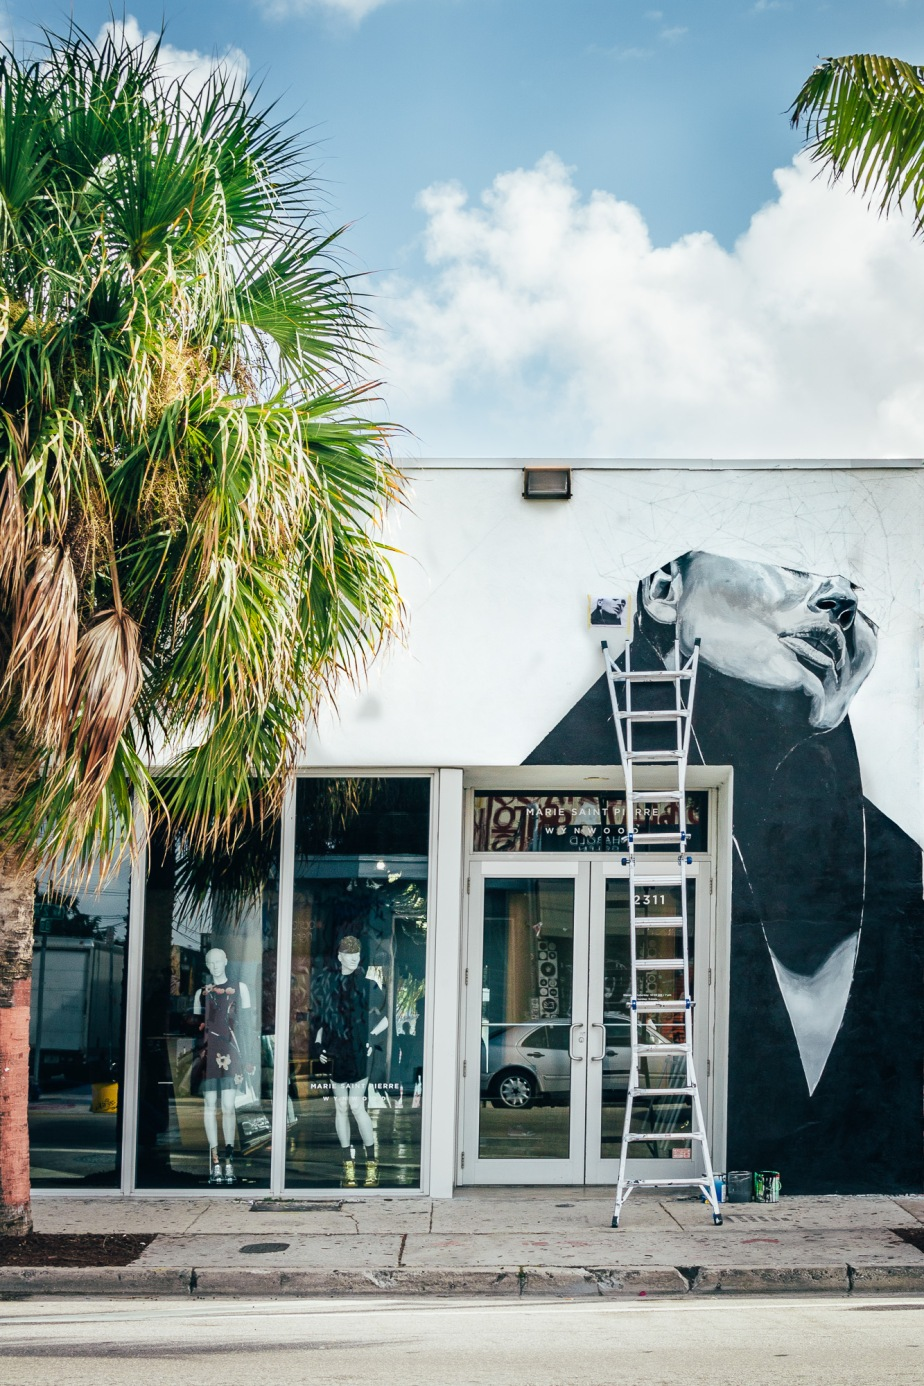 wynwood_miami-6.jpg